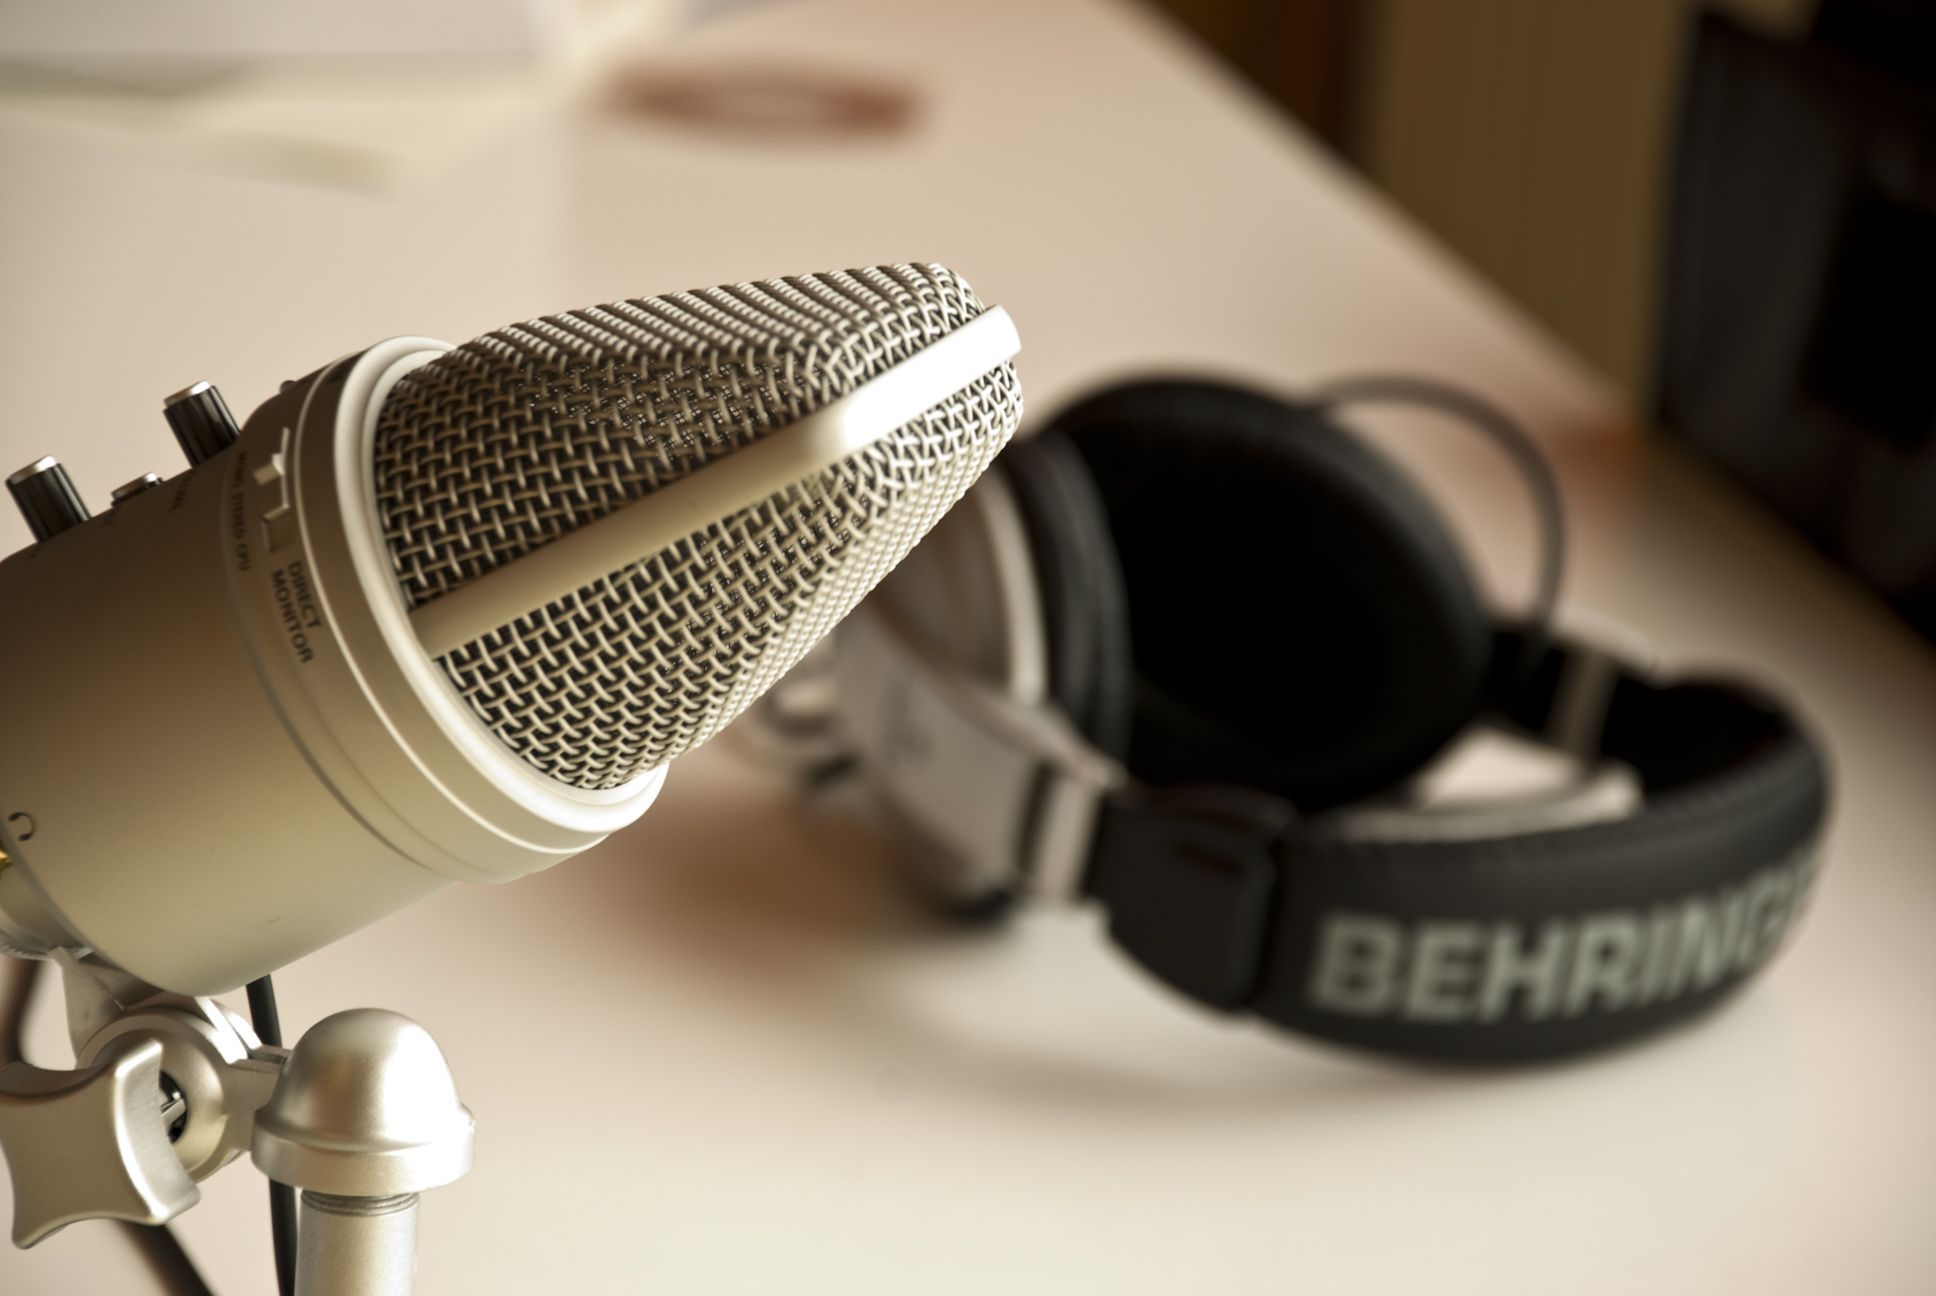 Podcasting attracts new voices and audiences to public media, but it's not a silver bullet